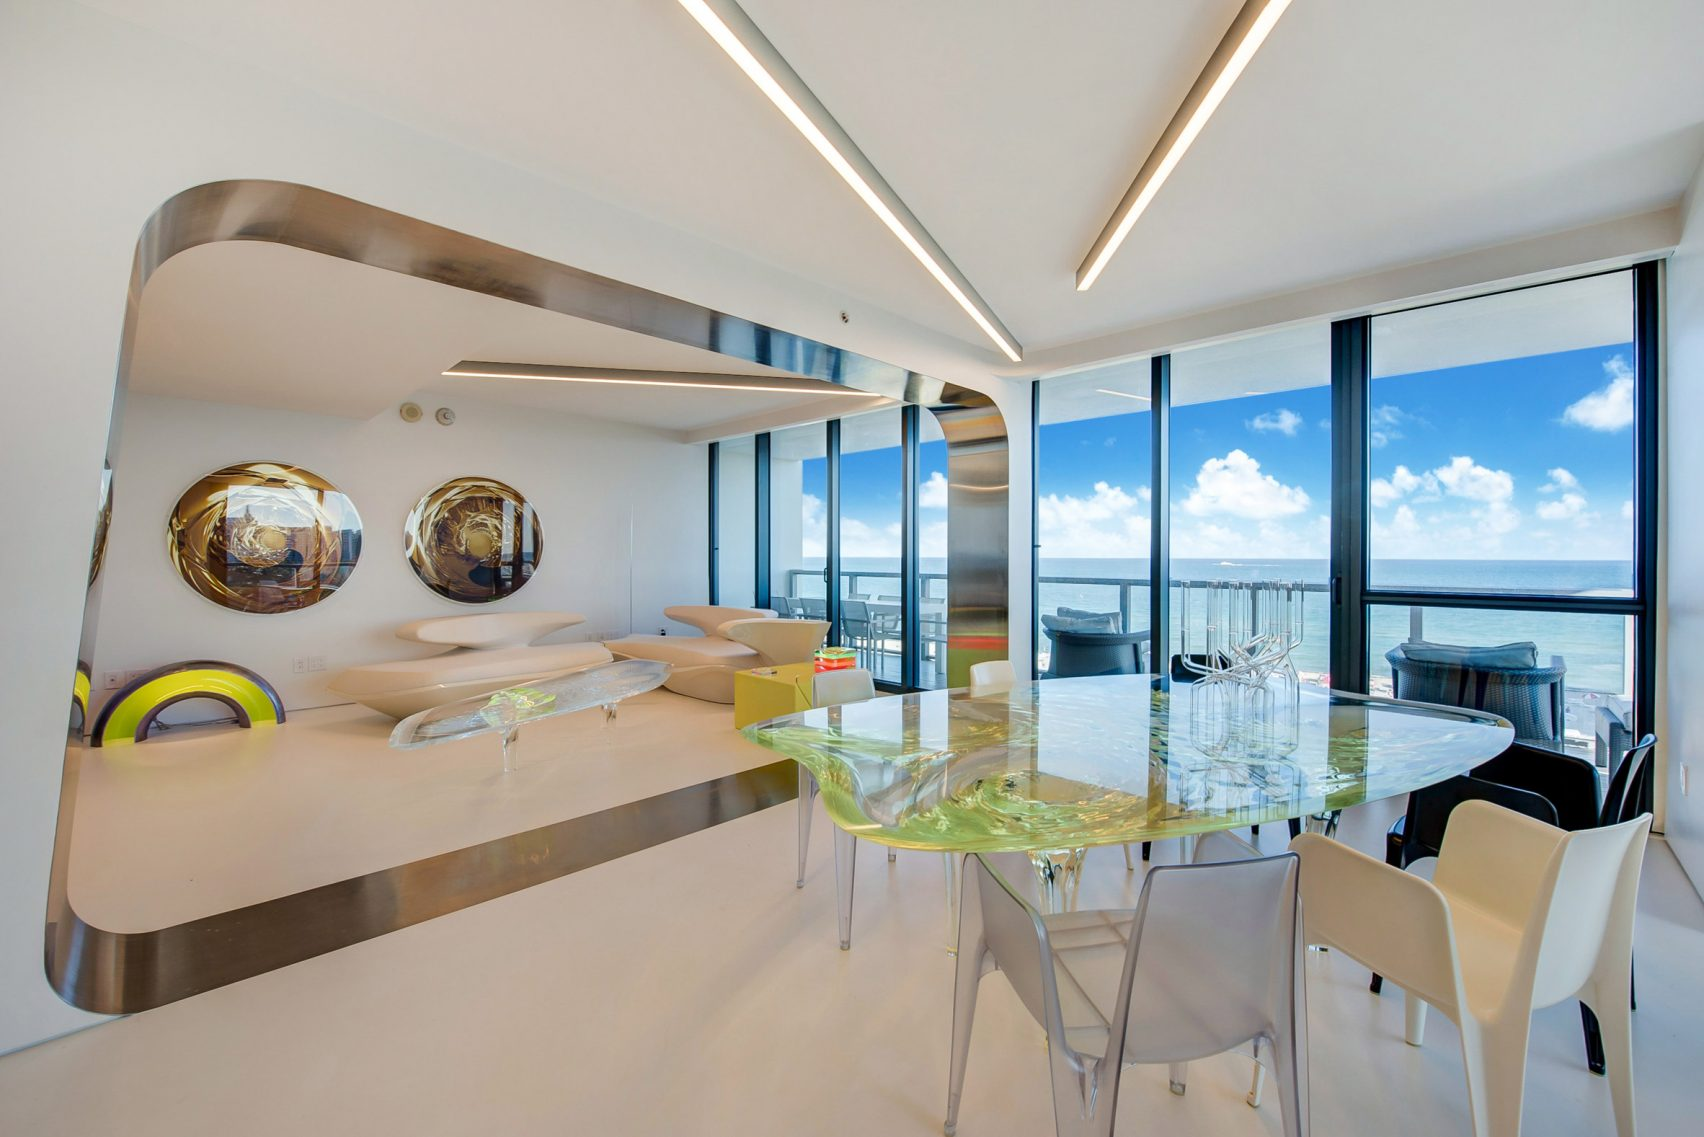 design, luxury, penthouse, american, miami, modern, zaha hadi, beach, architect, villa, billionaire, house, usa, livingroom